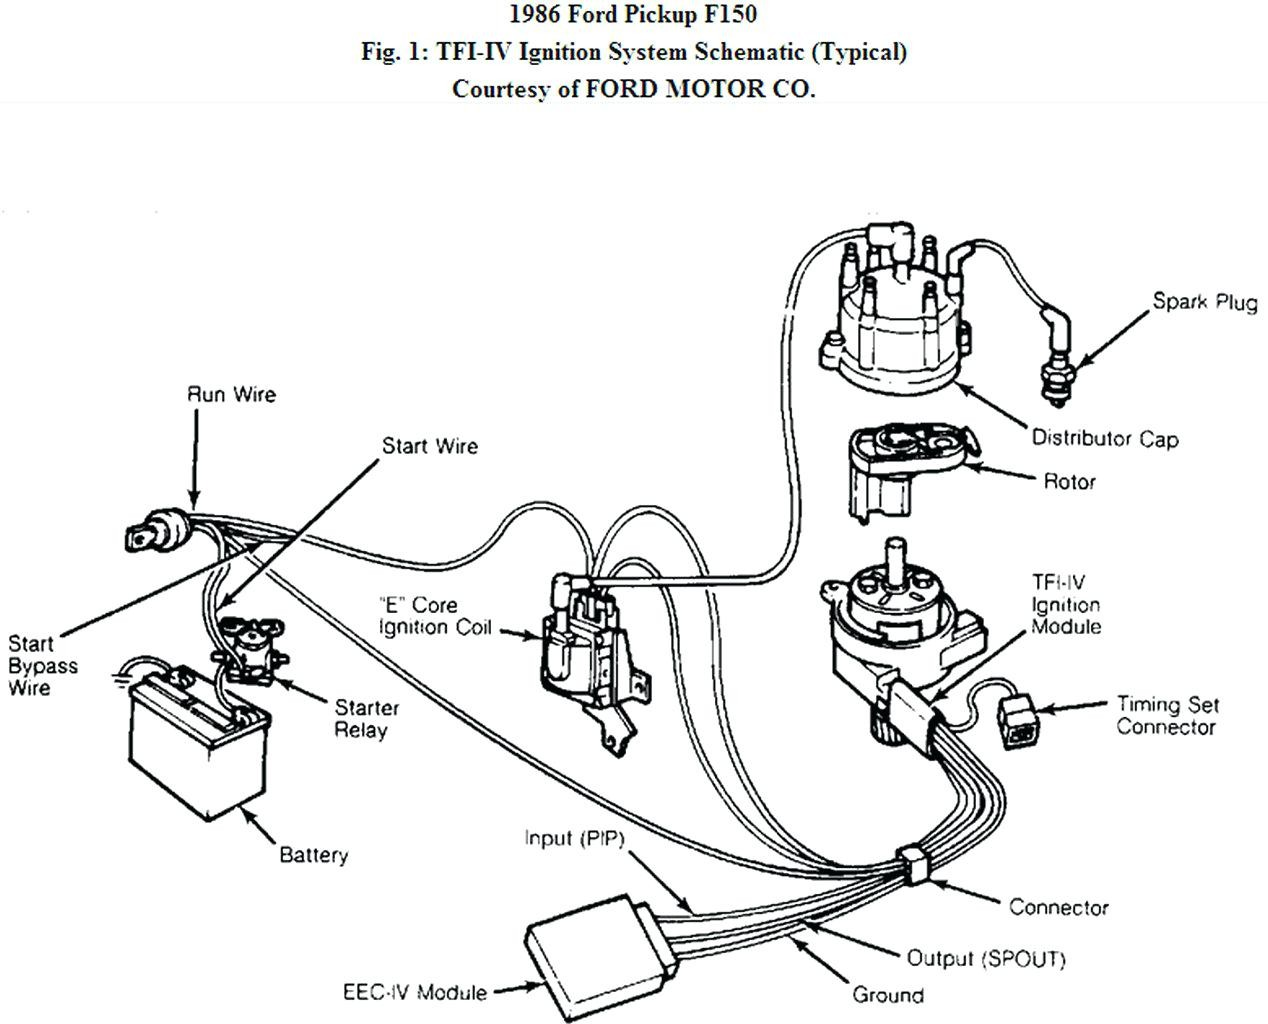 1984 Ford Pickup Alternator Wiring Diagram Will Be A Thing 2g Altanator Wireing F 150 Trusted Rh Dafpods Co Circuit Hook Up